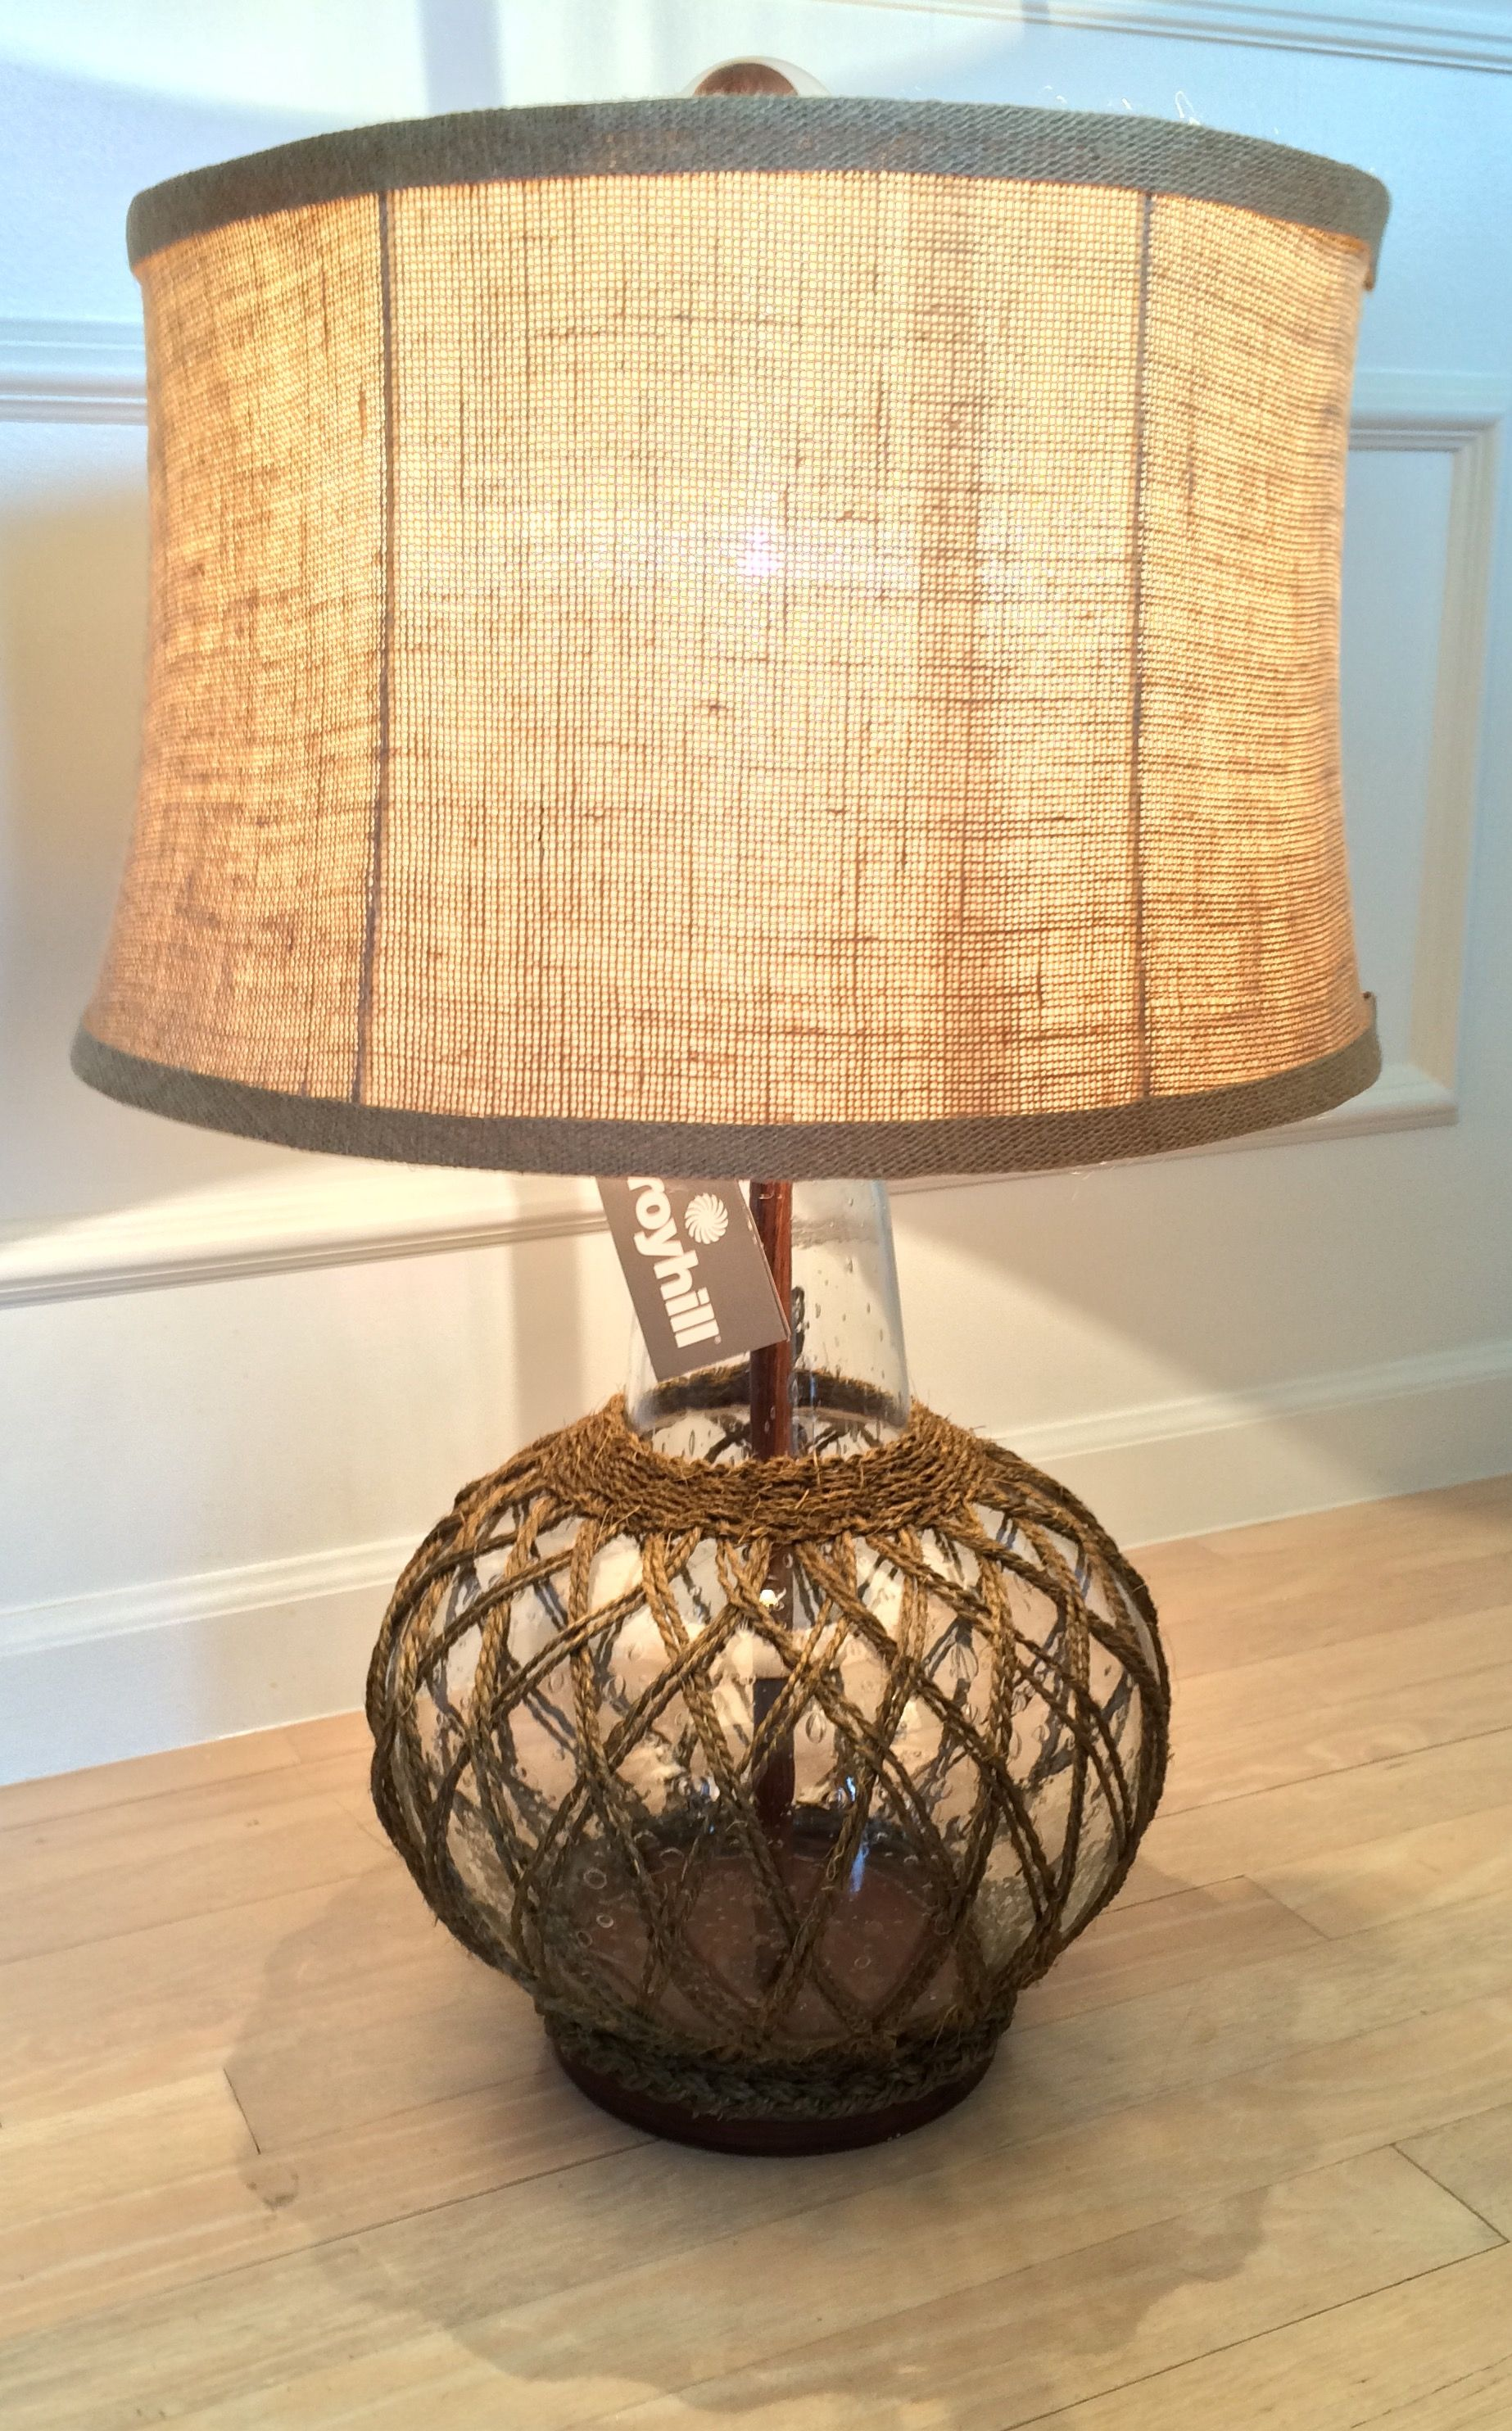 Broyhill Fishing Float Lamp At Homegoods